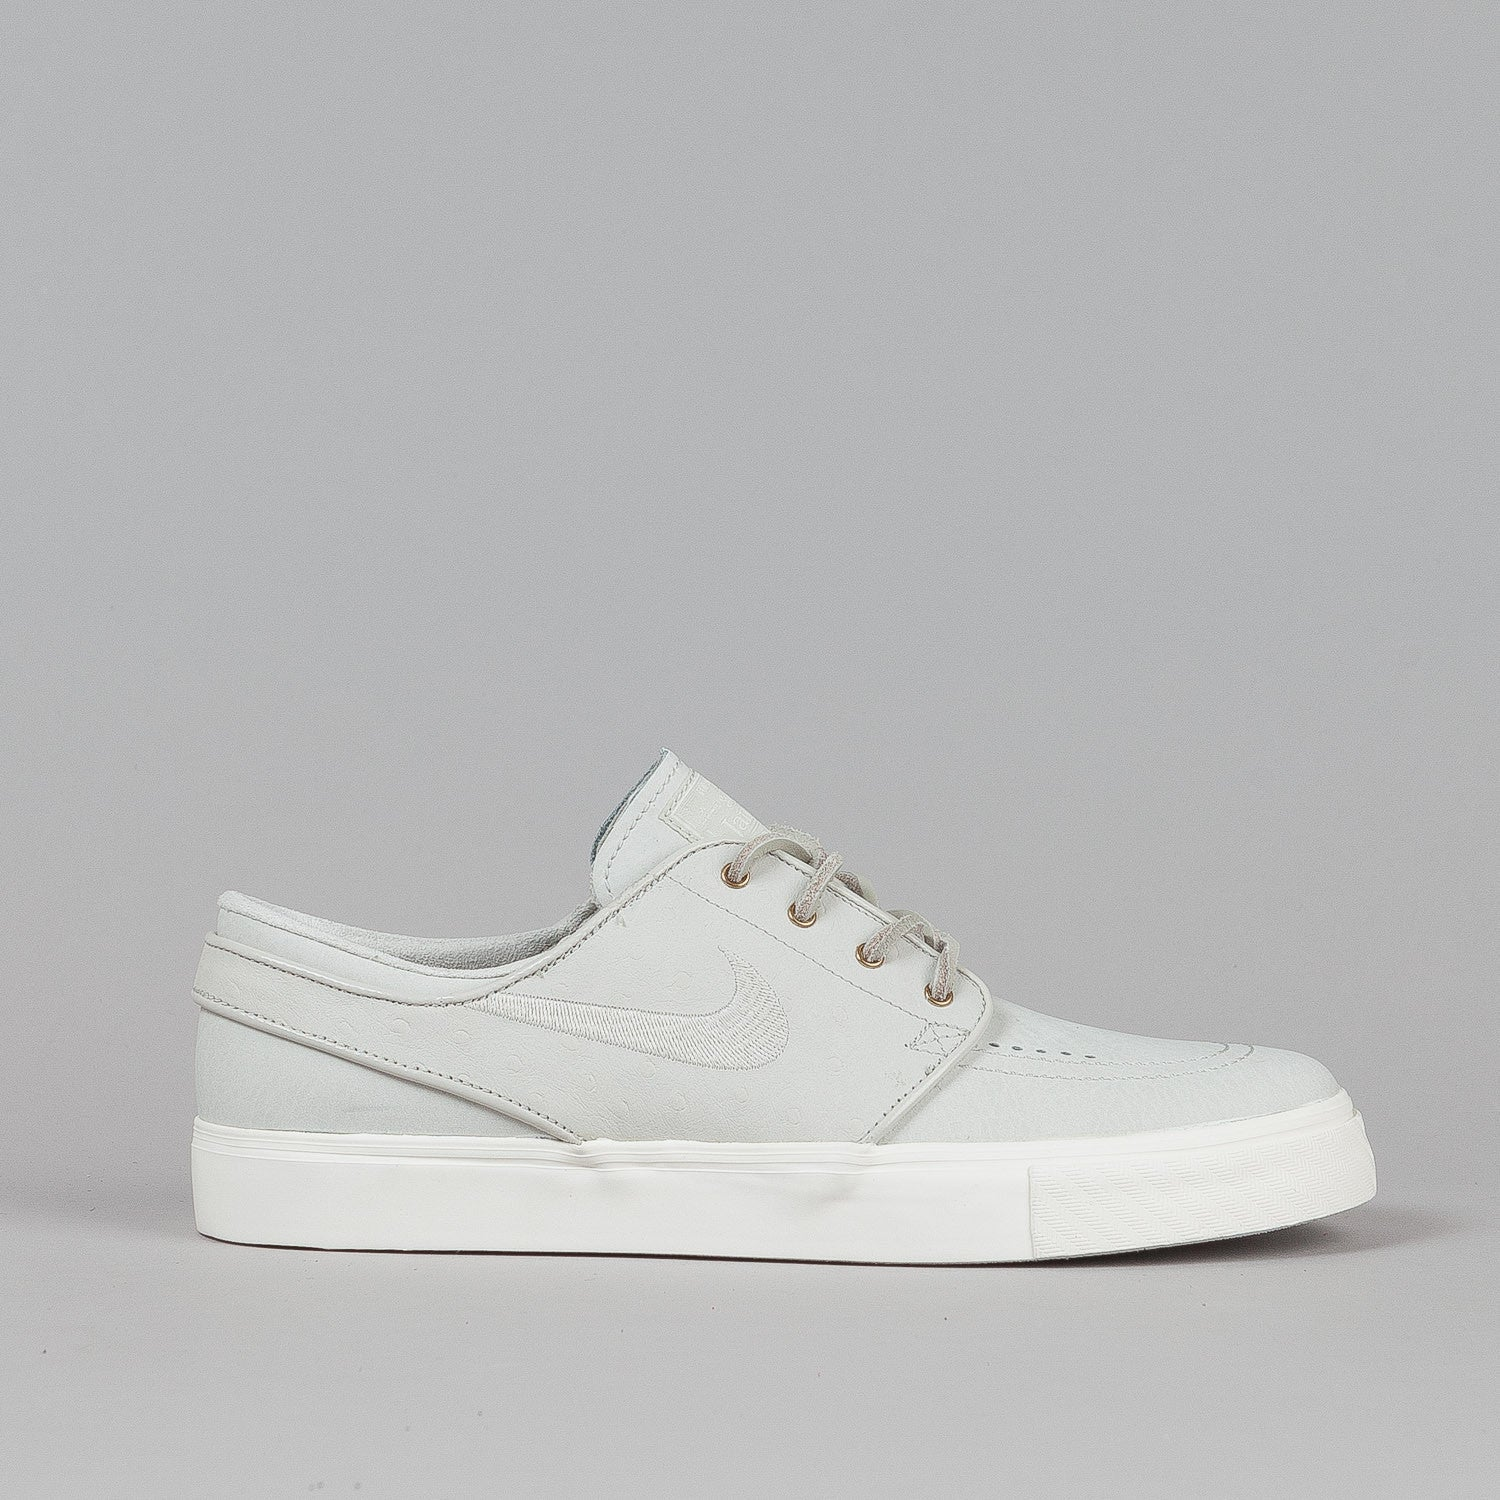 Nike SB Stefan Janoski PREM Shoes Light Bone / Light Bone - Sail